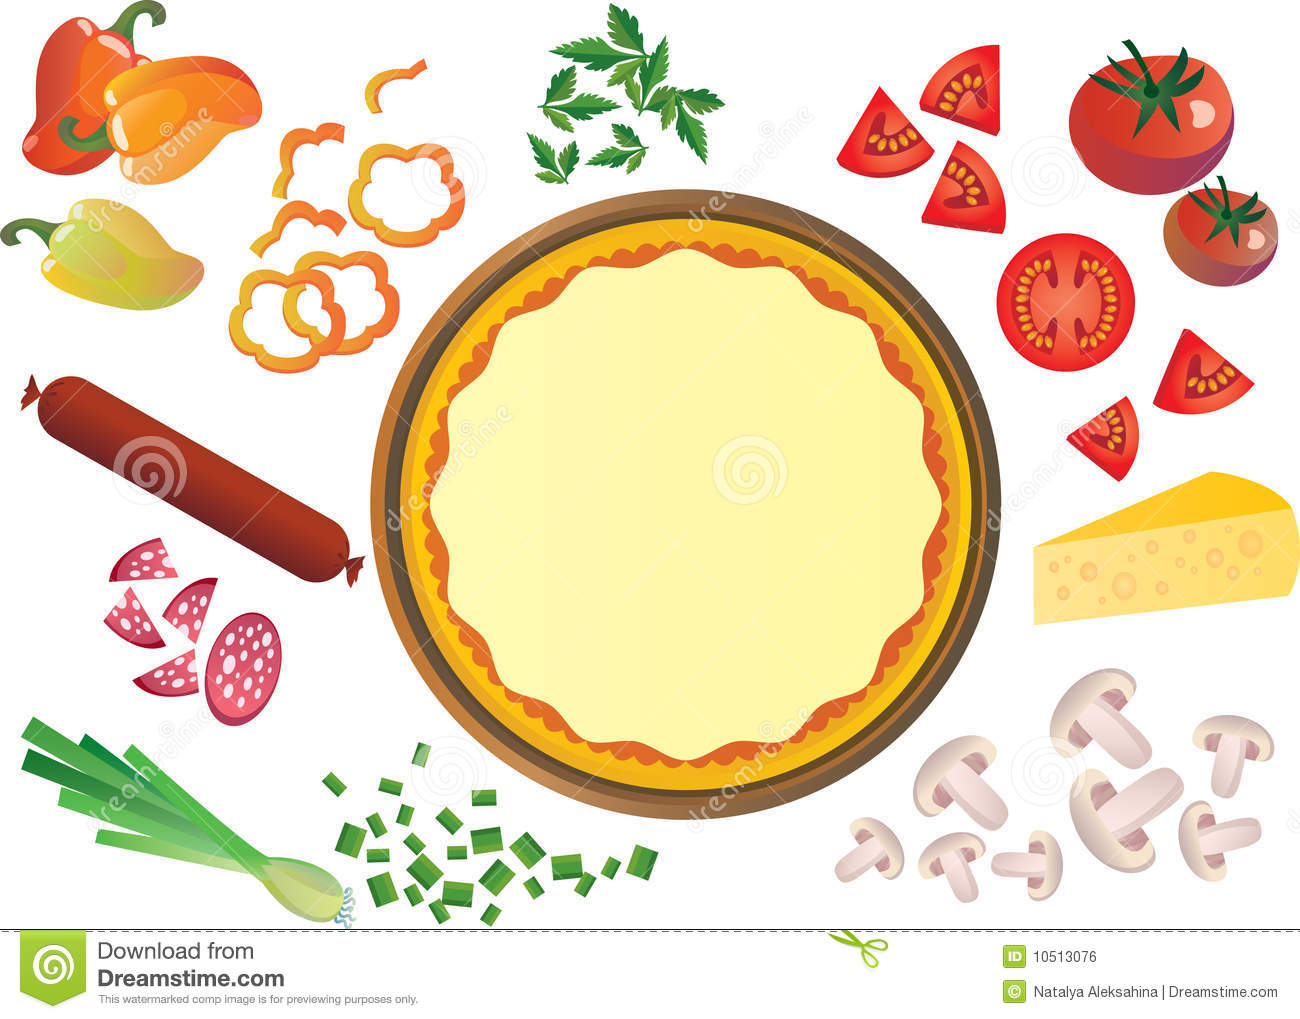 Pizza Ingredients Royalty Free Stock Image - Image: 10513076